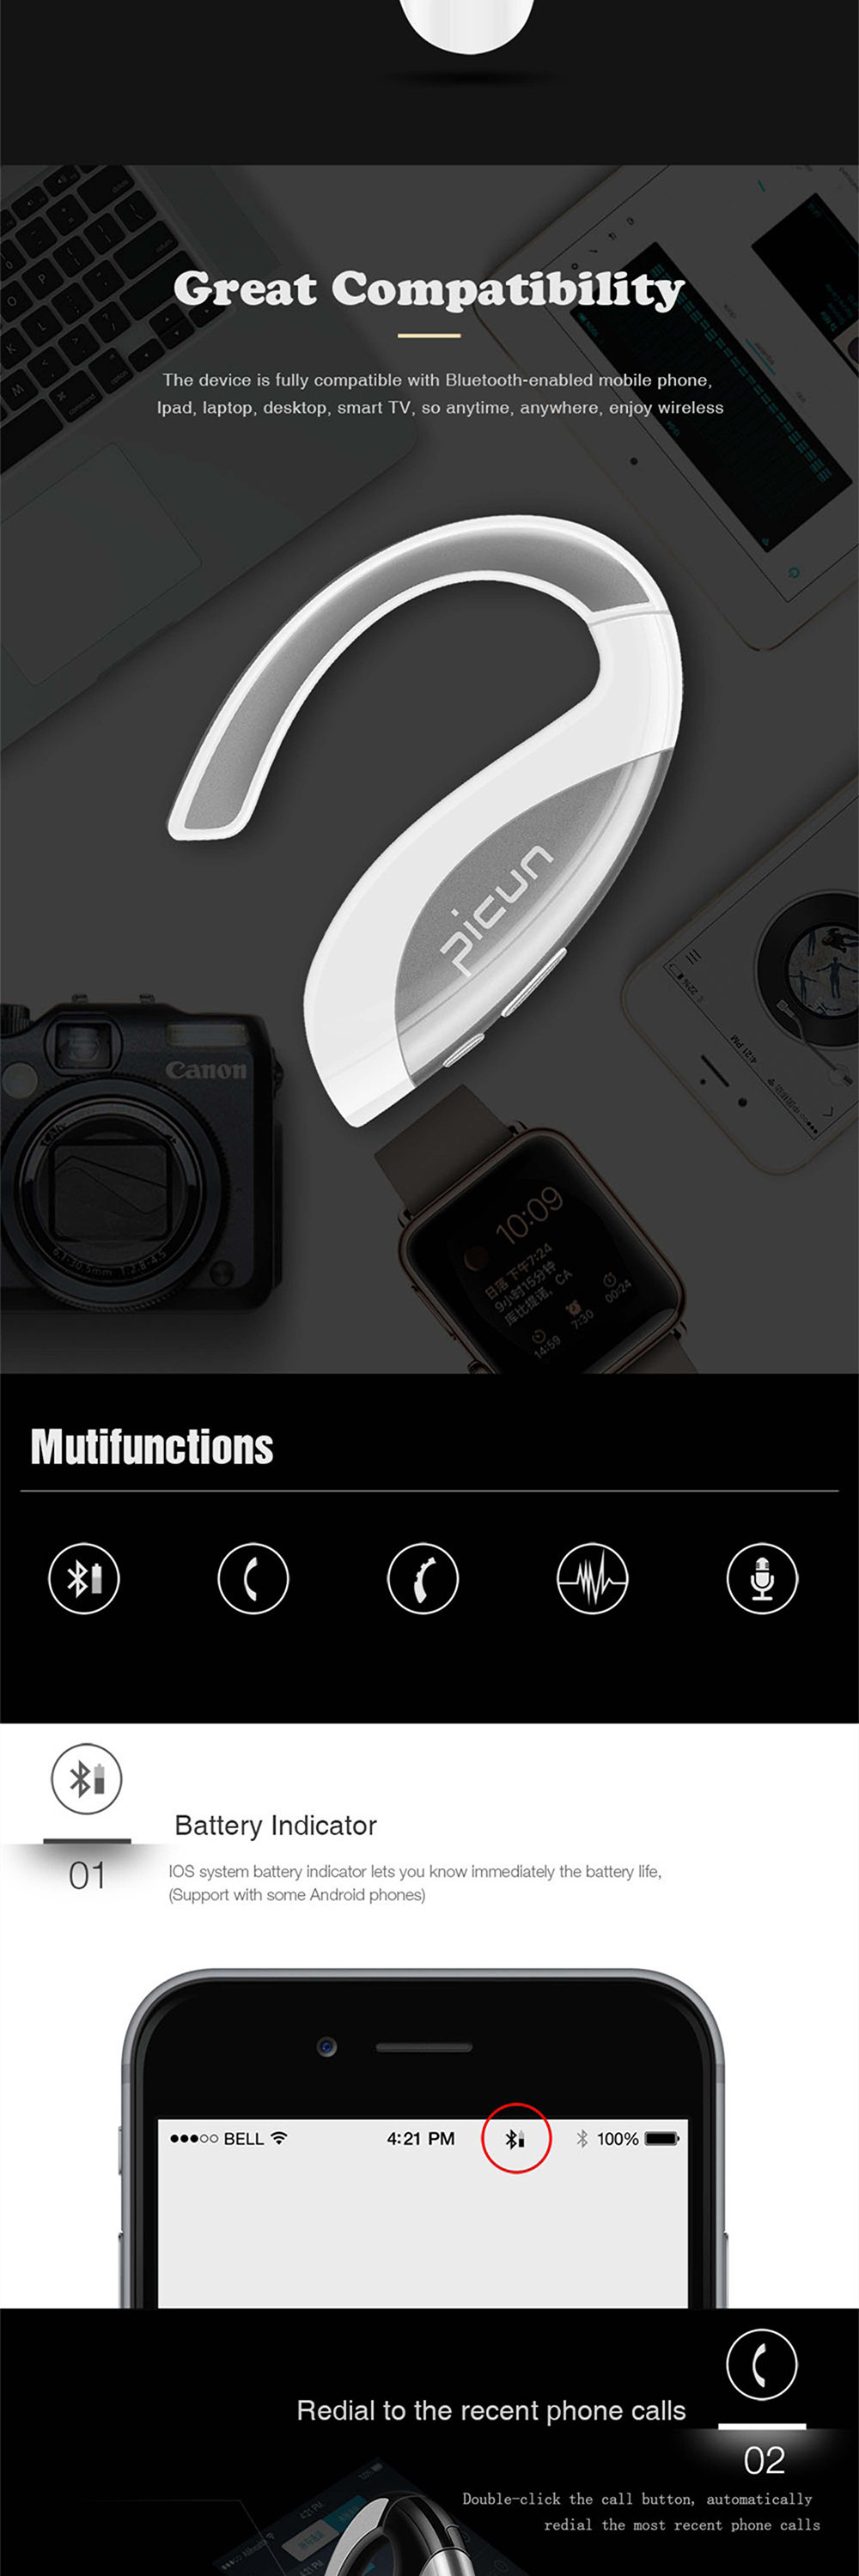 Sound Intone T2 Stereo Headset Bluetooth Earphone Headphone Wireless Handfree earbuds With Mic  for iPhone 6 5S Samsung Android